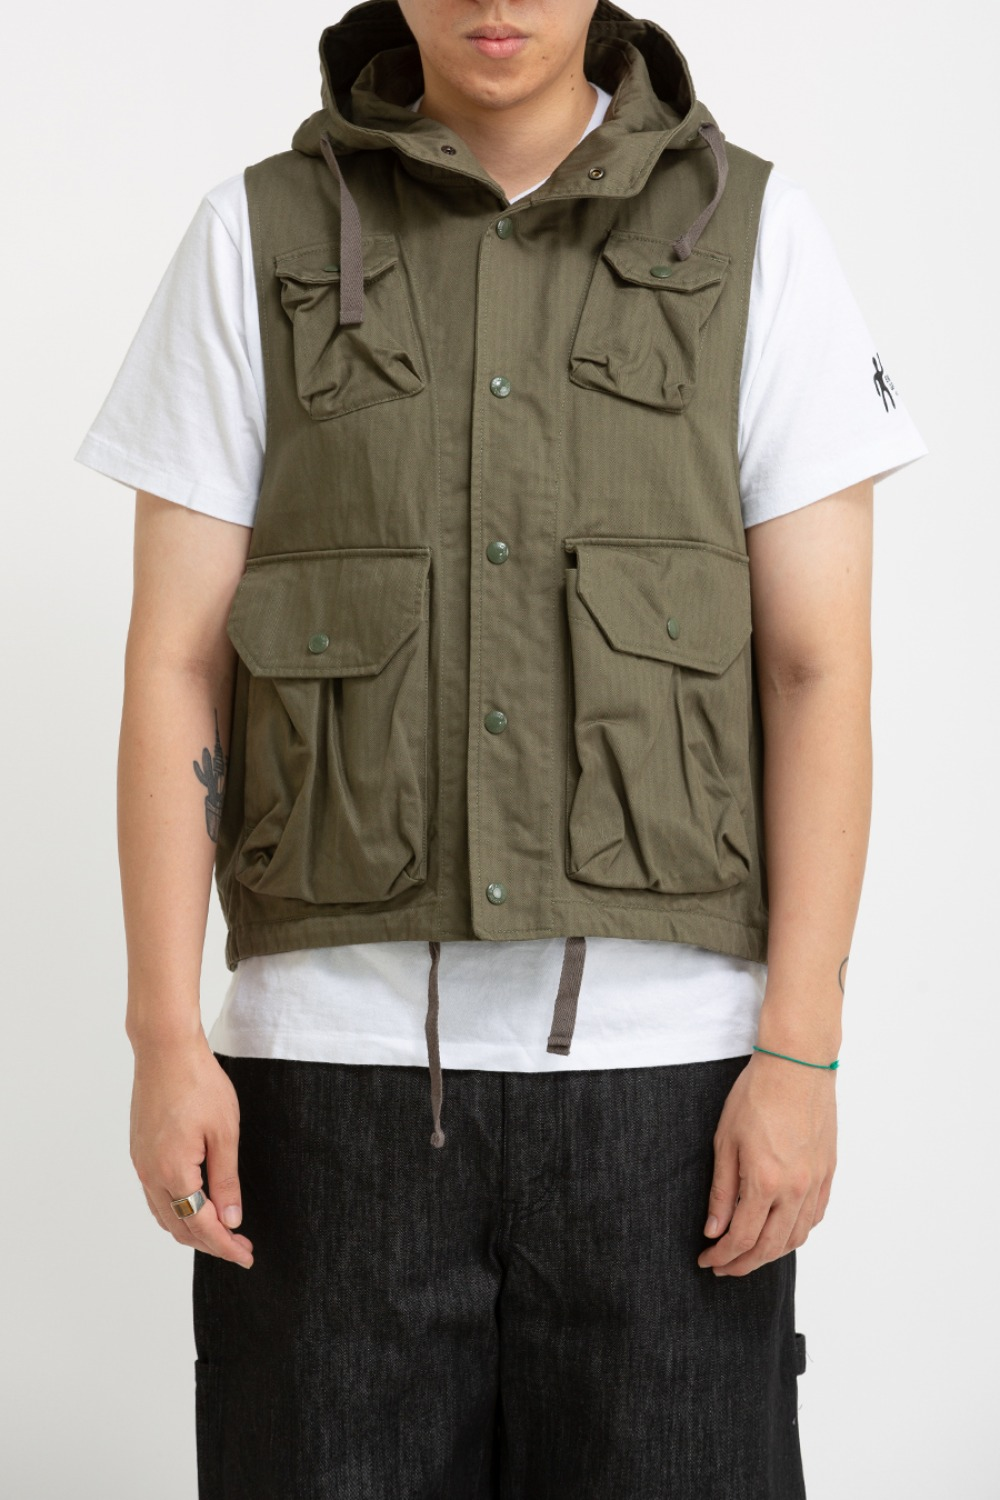 FIELD VEST OLIVE COTTON HERRINGBONE